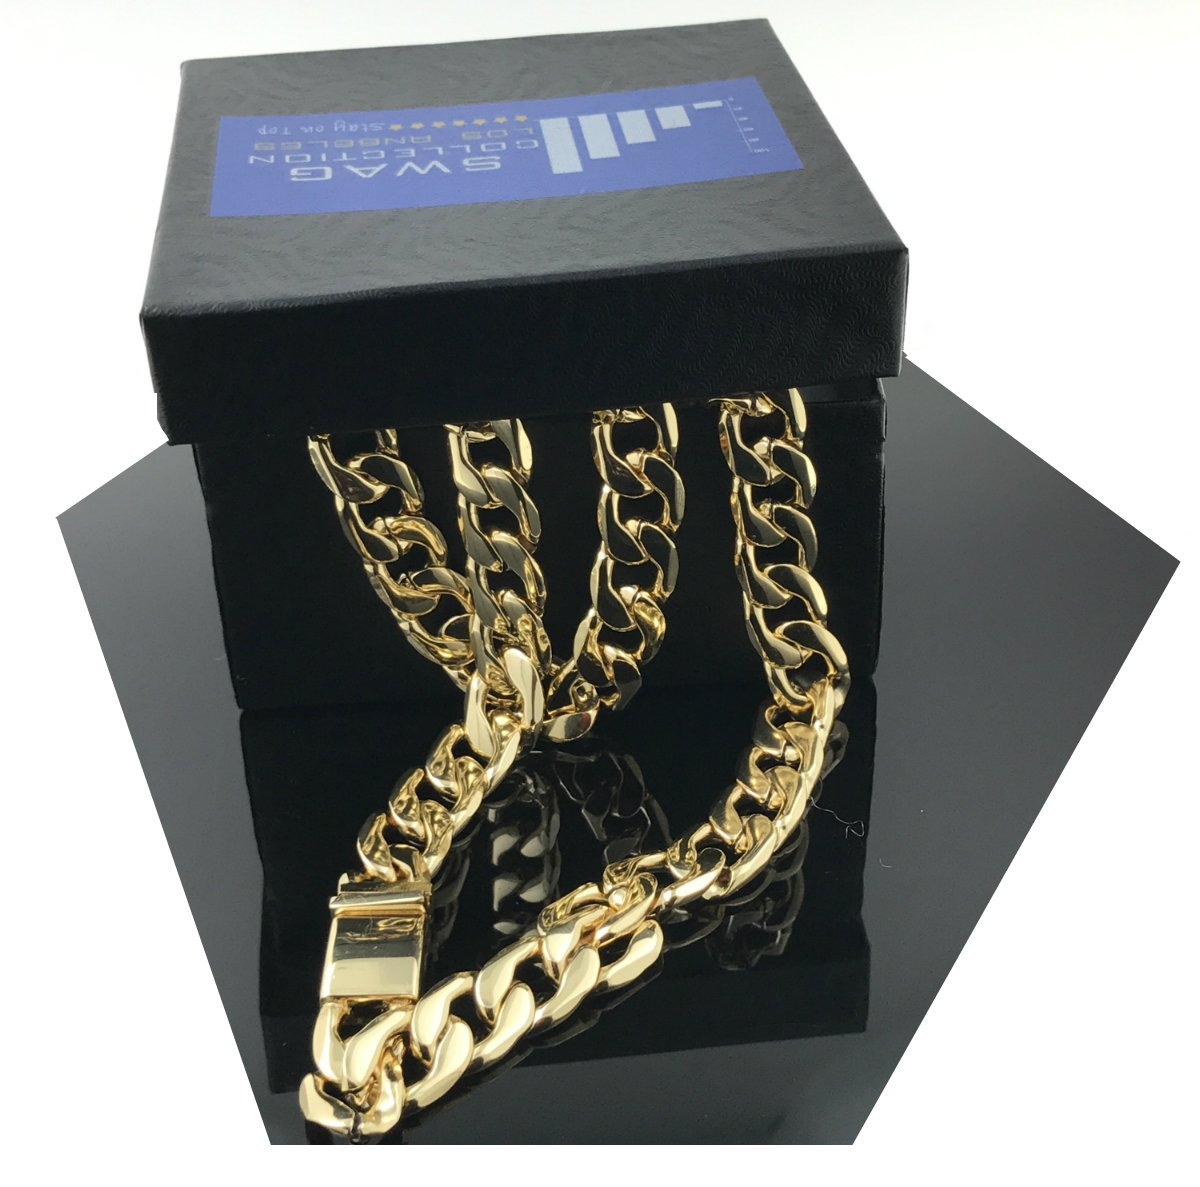 Gold chain necklace 11MM 14K Diamond cut Smooth Cuban Link with a Warranty Of A LifeTime USA Made! (30) by Unknown (Image #1)